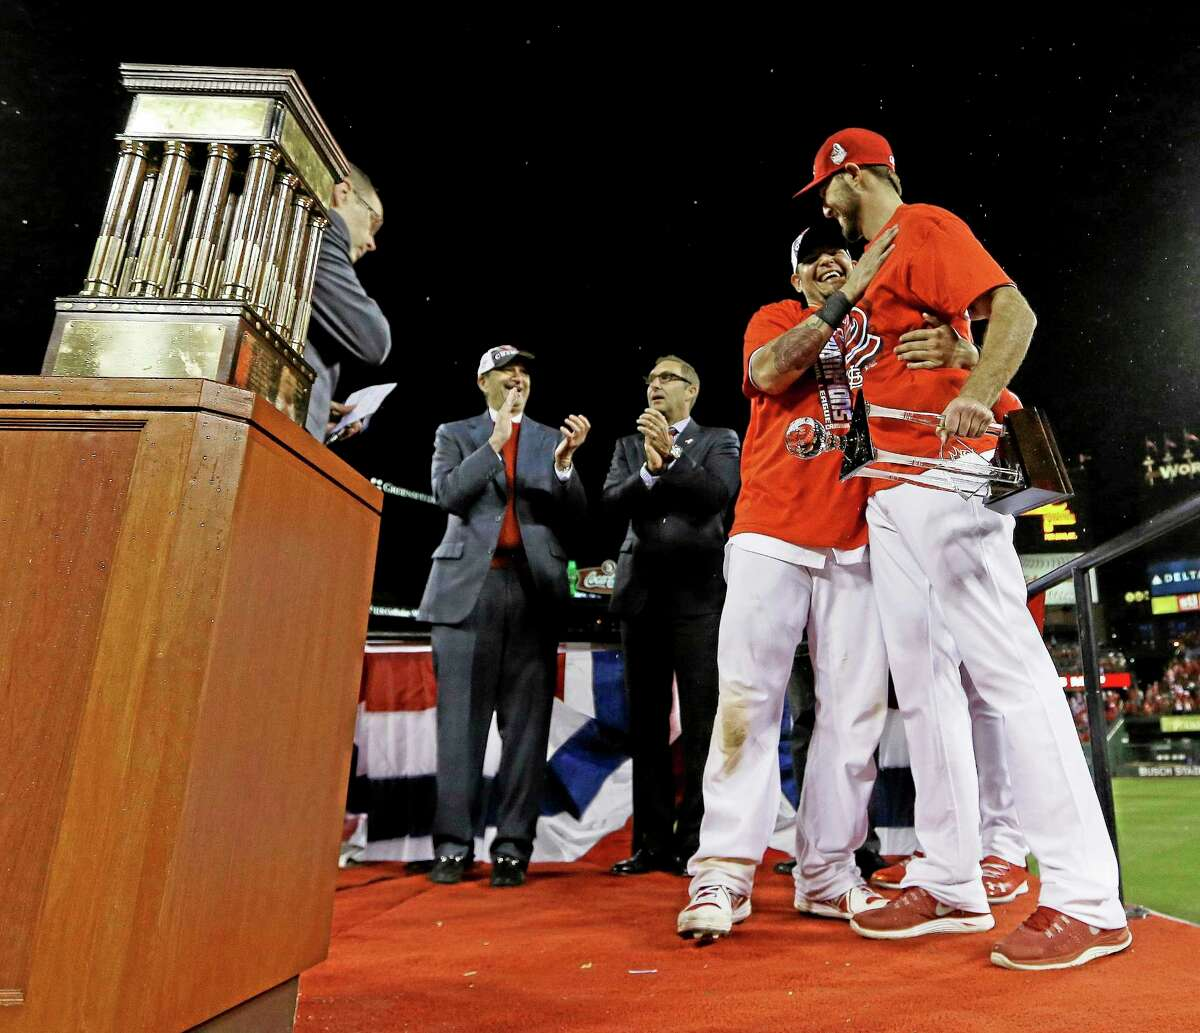 Cardinals catcher Yadier Molina and starter Michael Wacha celebrate after Game 6 of the National League championship series against the Los Angeles Dodgers on Friday in St. Louis. The Cardinals won 9-0 to win the series.